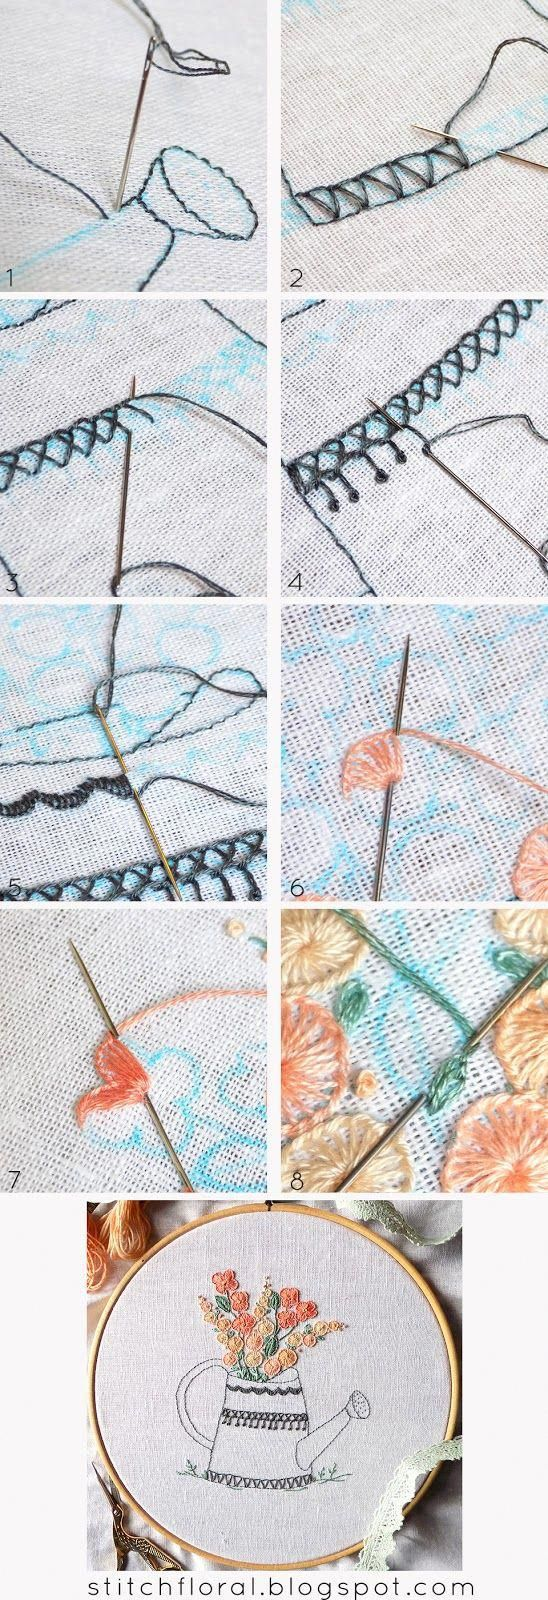 Embroidery: A beginner's step-by-step guide to stiches and ...